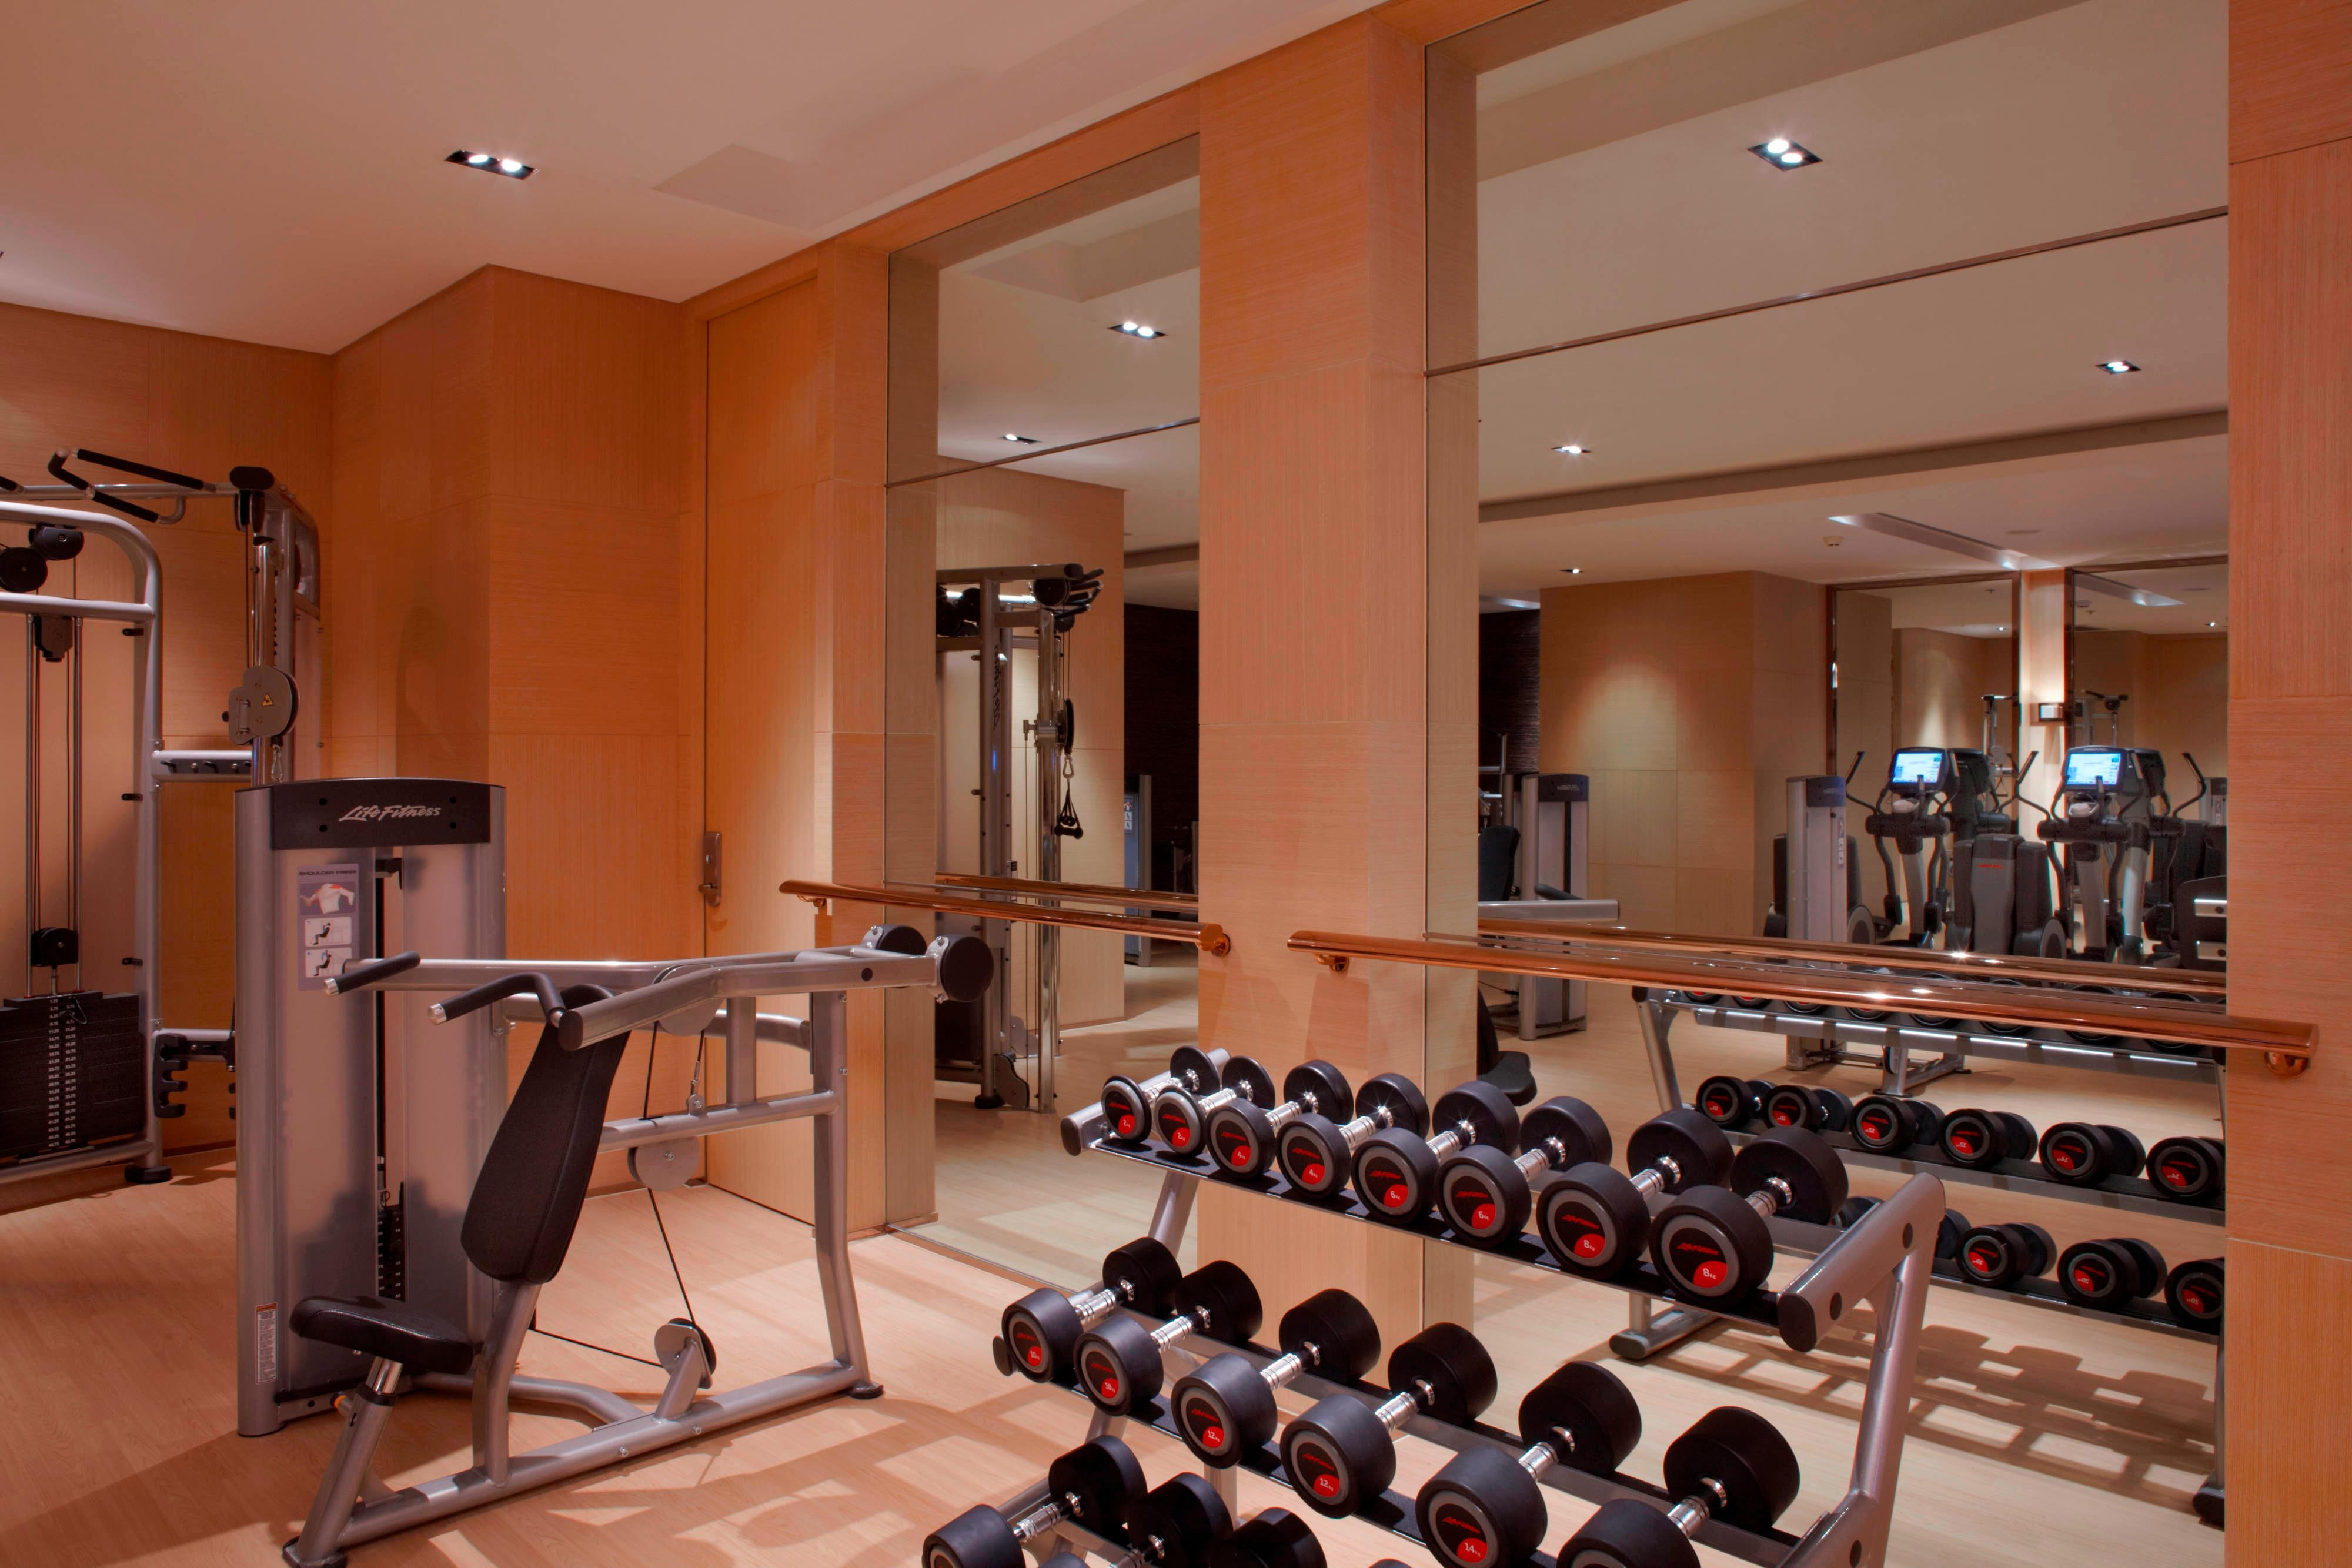 Fitness Center in Guangzhou